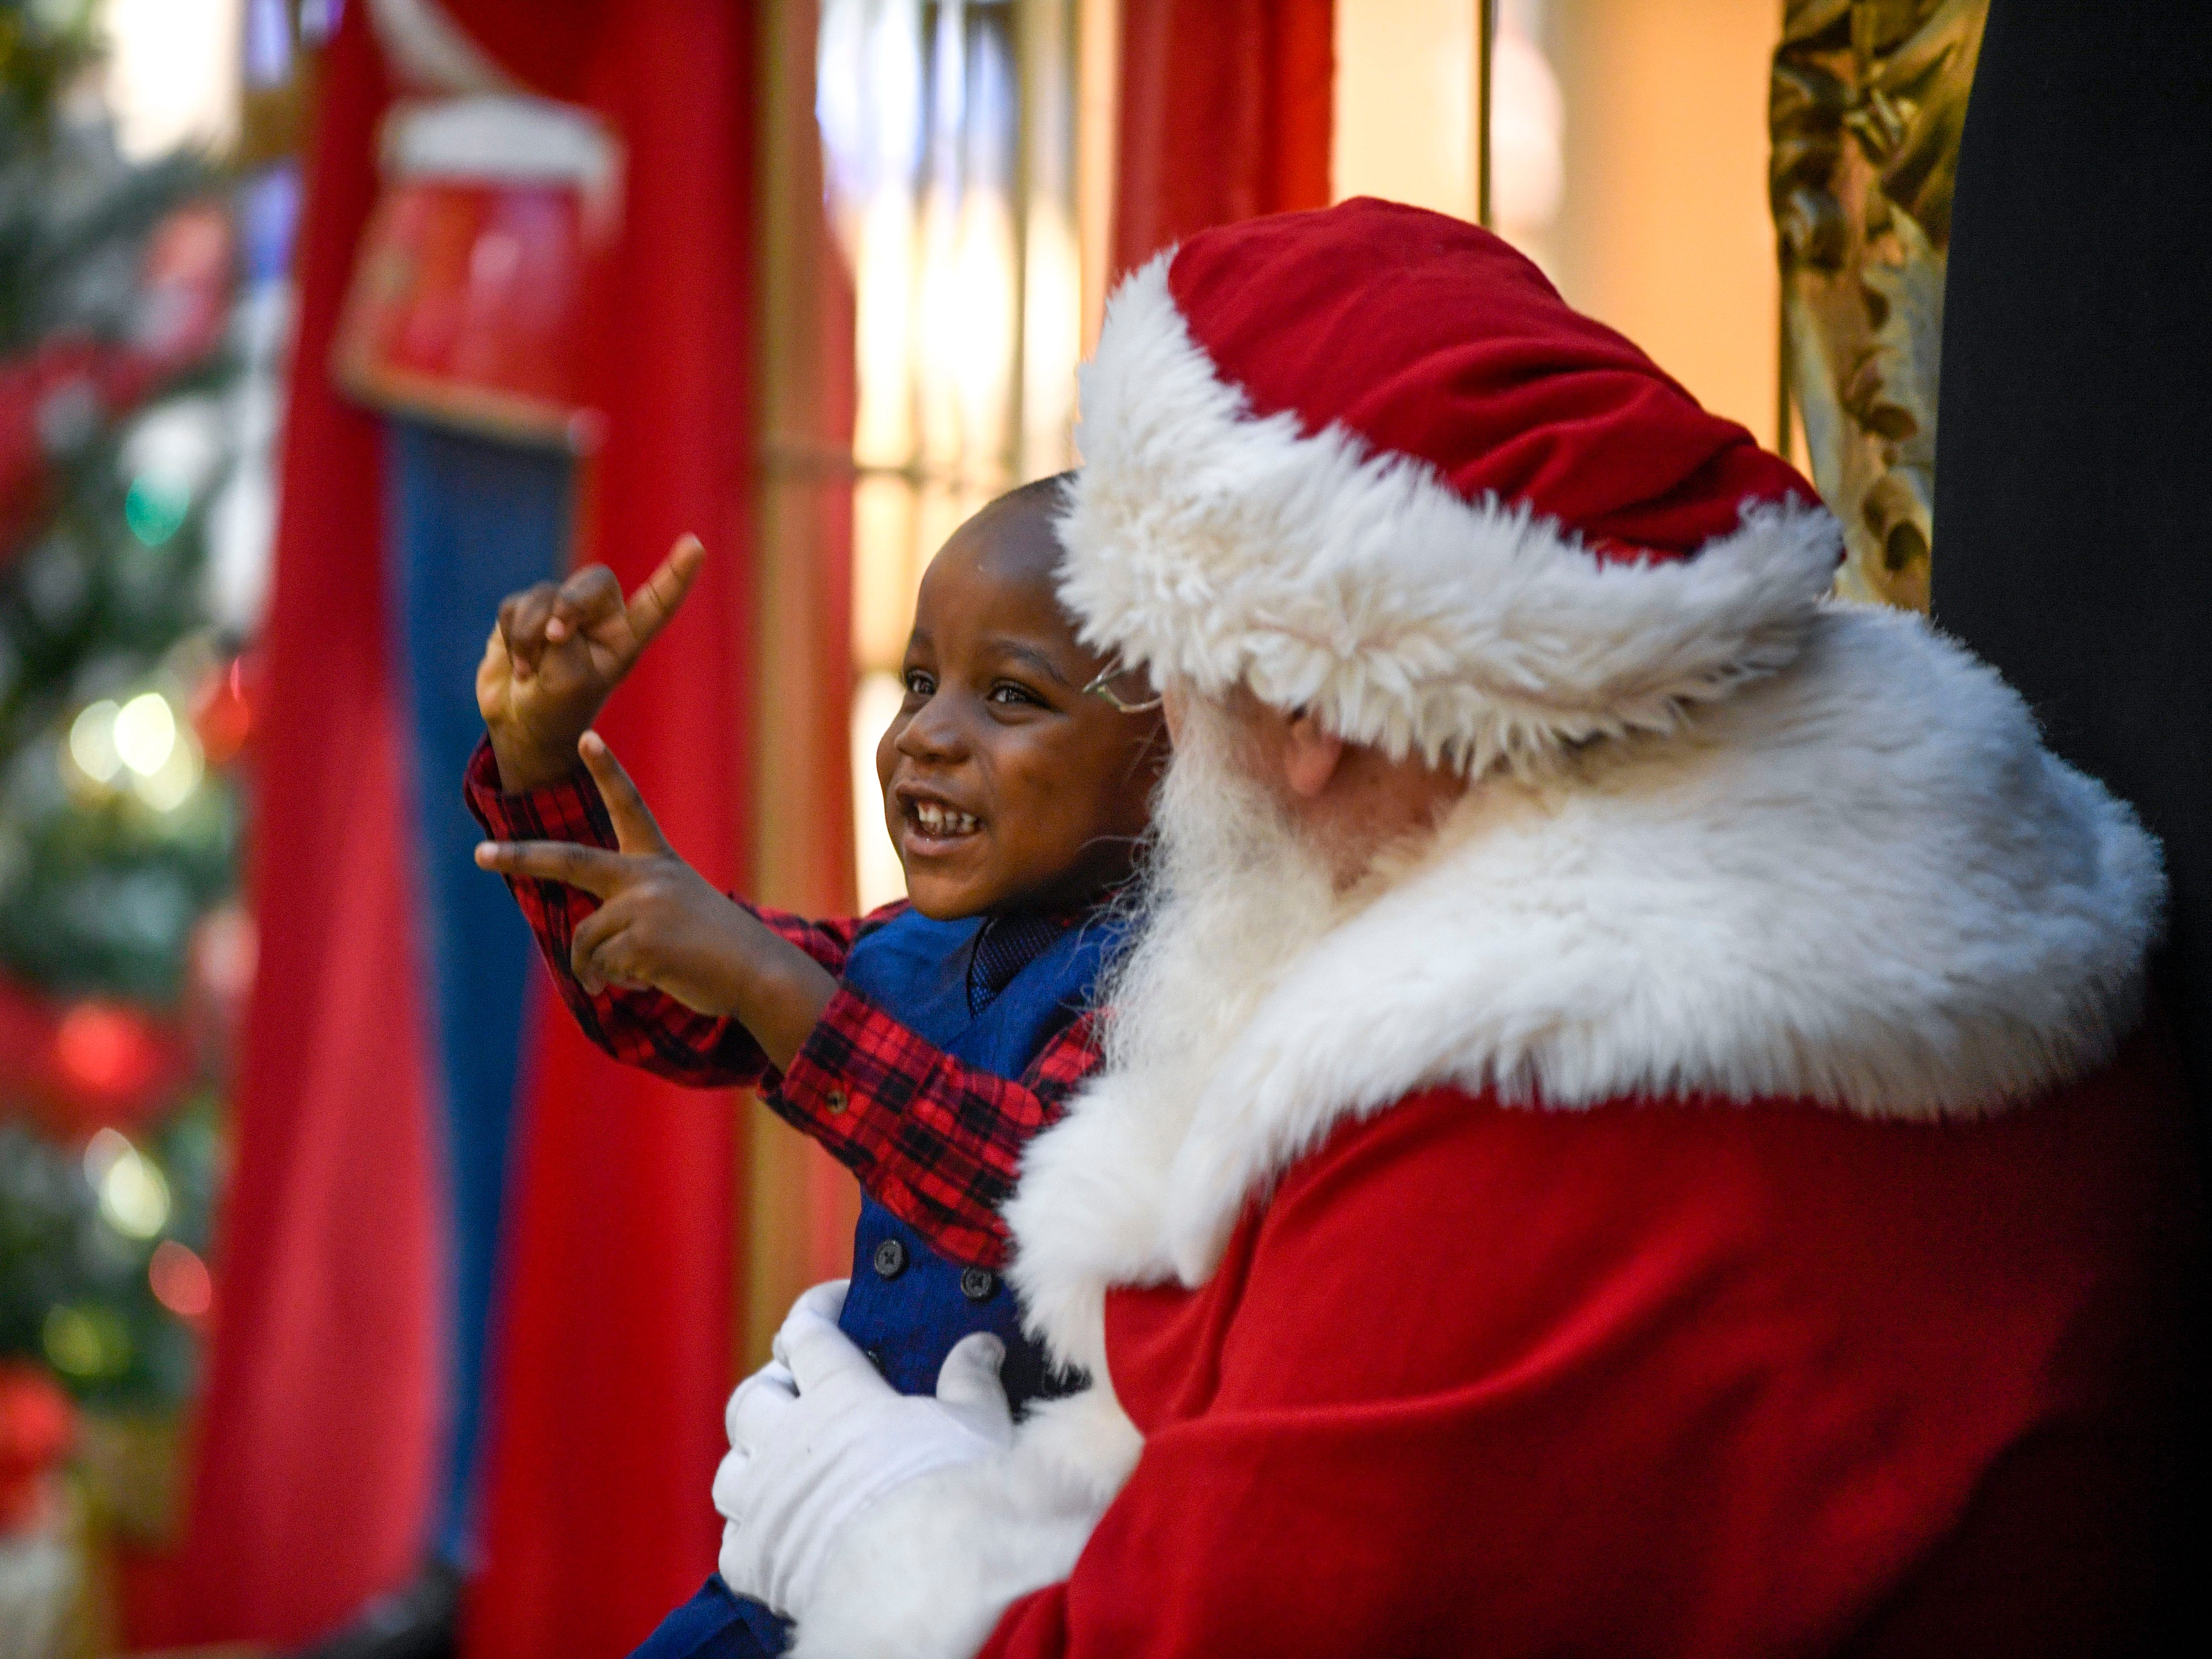 Ryan Lyonga, 2, waves his hands excitedly while being hoisted up for a photo with Santa Claus at Old Hickory Mall in Jackson, Tenn., on Wednesday, Nov. 21, 2018.